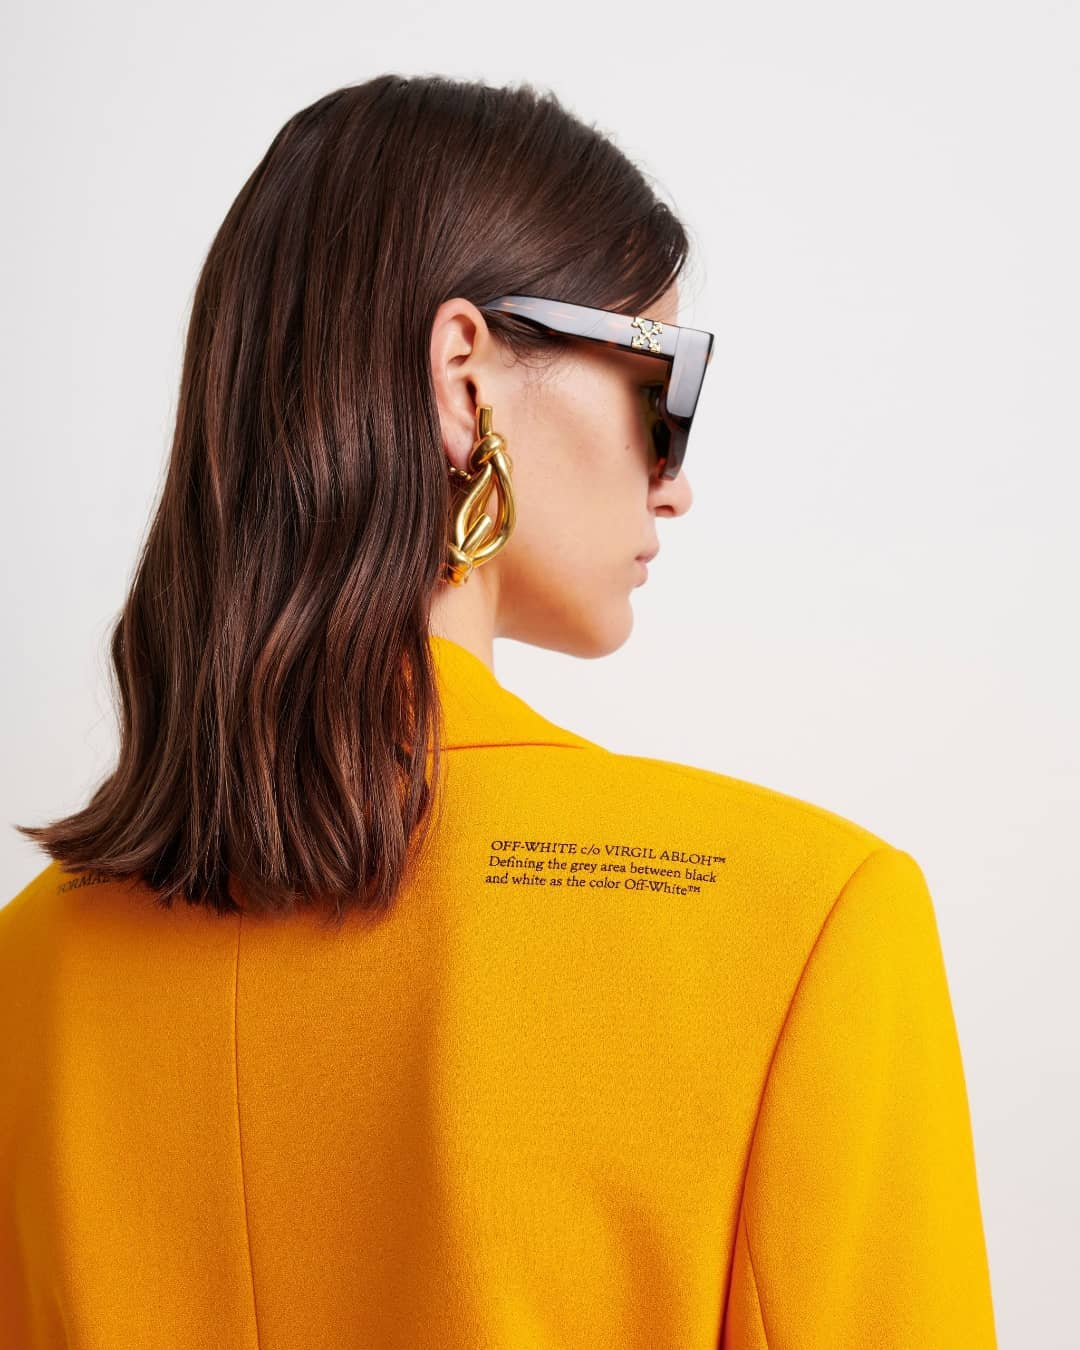 IT SUITS YOU: add some flair to yoursuiting rotationwith this orange blazer from @off____white. Crafted in a single-breasted silhouette, it will be the perfect contemporary piece to elevate your autumn looks.  Available on genteroma.com and in our boutiques.  #GenteRoma #OffWhite #FW21